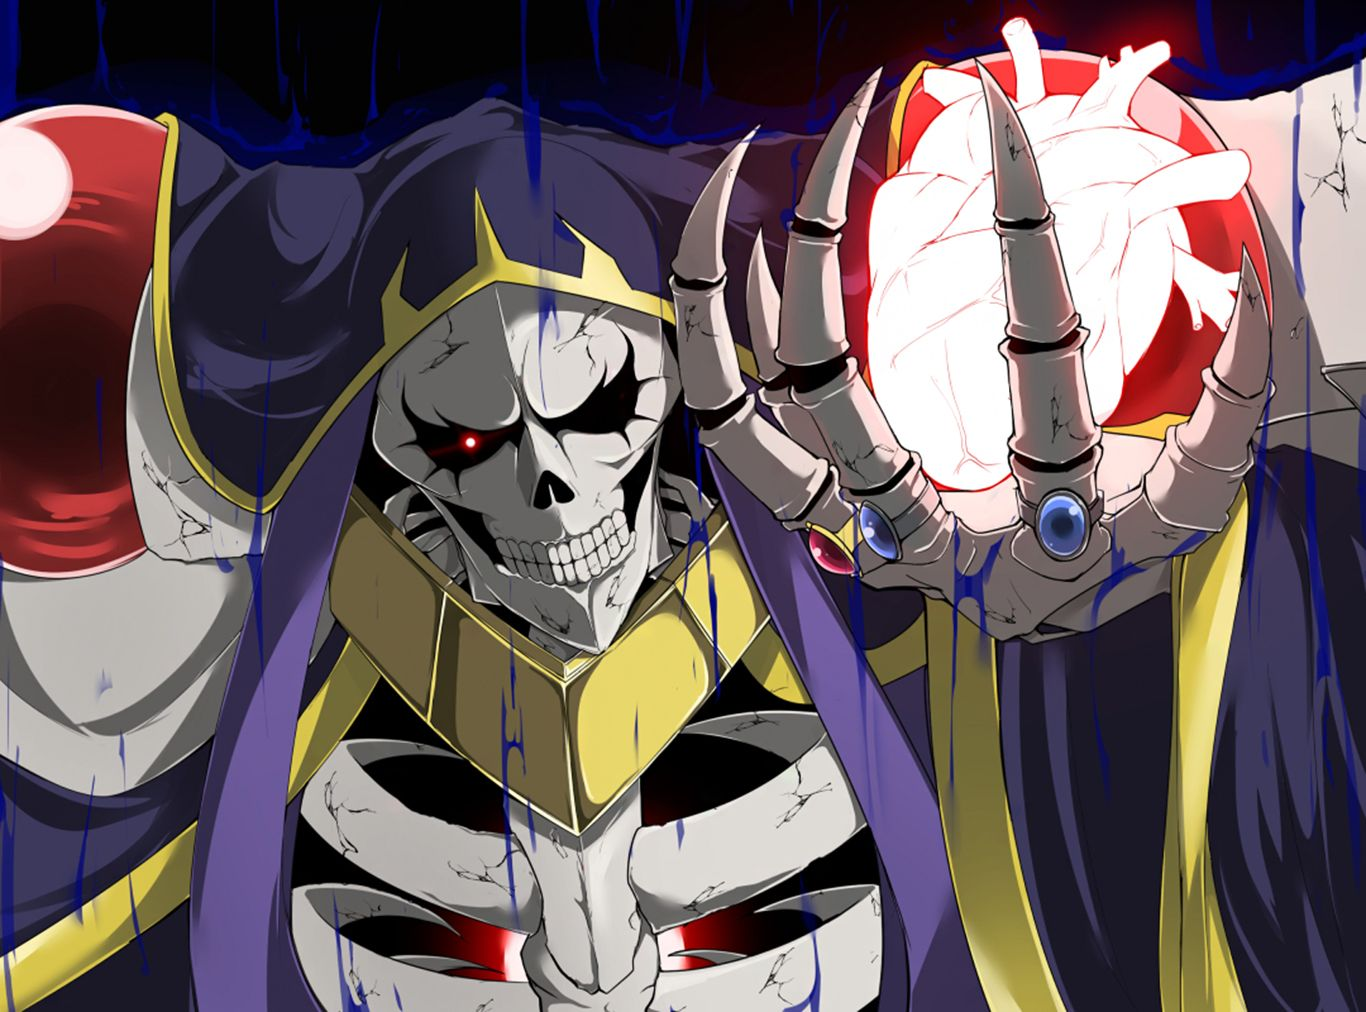 Ainz Ooal Gown Computer Wallpapers Desktop Backgrounds 1366x1012 Id 648903 Anime Anime Images Anime Wallpaper